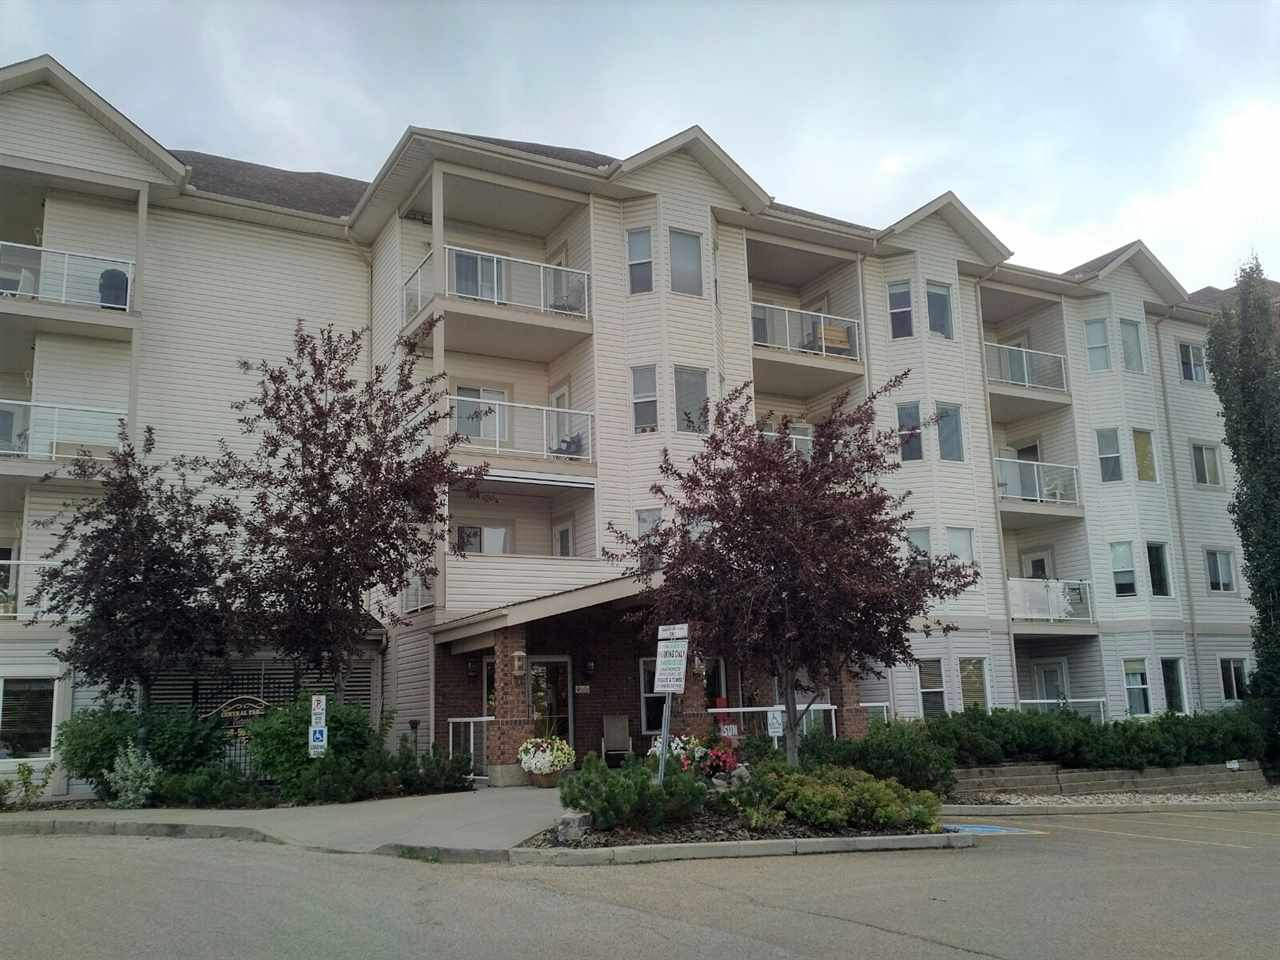 EXCELLENT OPPORTUNITY TO ENJOY AN ACTIVE ADULT LIFESTYLE AT A GREAT PRICE!  If you're 55 or over, here's a condo you won't want to miss.  Located in the popular and desirable complex of Central Park Estates in NE Edmonton and a fantastic location close to lots of shopping, transit, LRT, medical centre, legion, and so much more.  3rd floor, TWO bedroom, TWO full baths, with open concept floorplan.  There's also TWO PARKING STALLS (one UNDERGROUND WITH STORAGE CAGE and the second is an OUTDOOR STALL close to entry).  The kitchen features oak cabinetry and a breakfast bar for casual dining, good sized living room with garden door to balcony, master bedroom has a walk-through closet and a full en suite.  There's also a big storage room with stackable washer and dryer.  The complex offer wonderful amenities, such as:  a theatre, exercise area, social room, games room, car wash, plus a heated pedway to the Miller Crossing Care Center next door.  Extremely well managed complex.